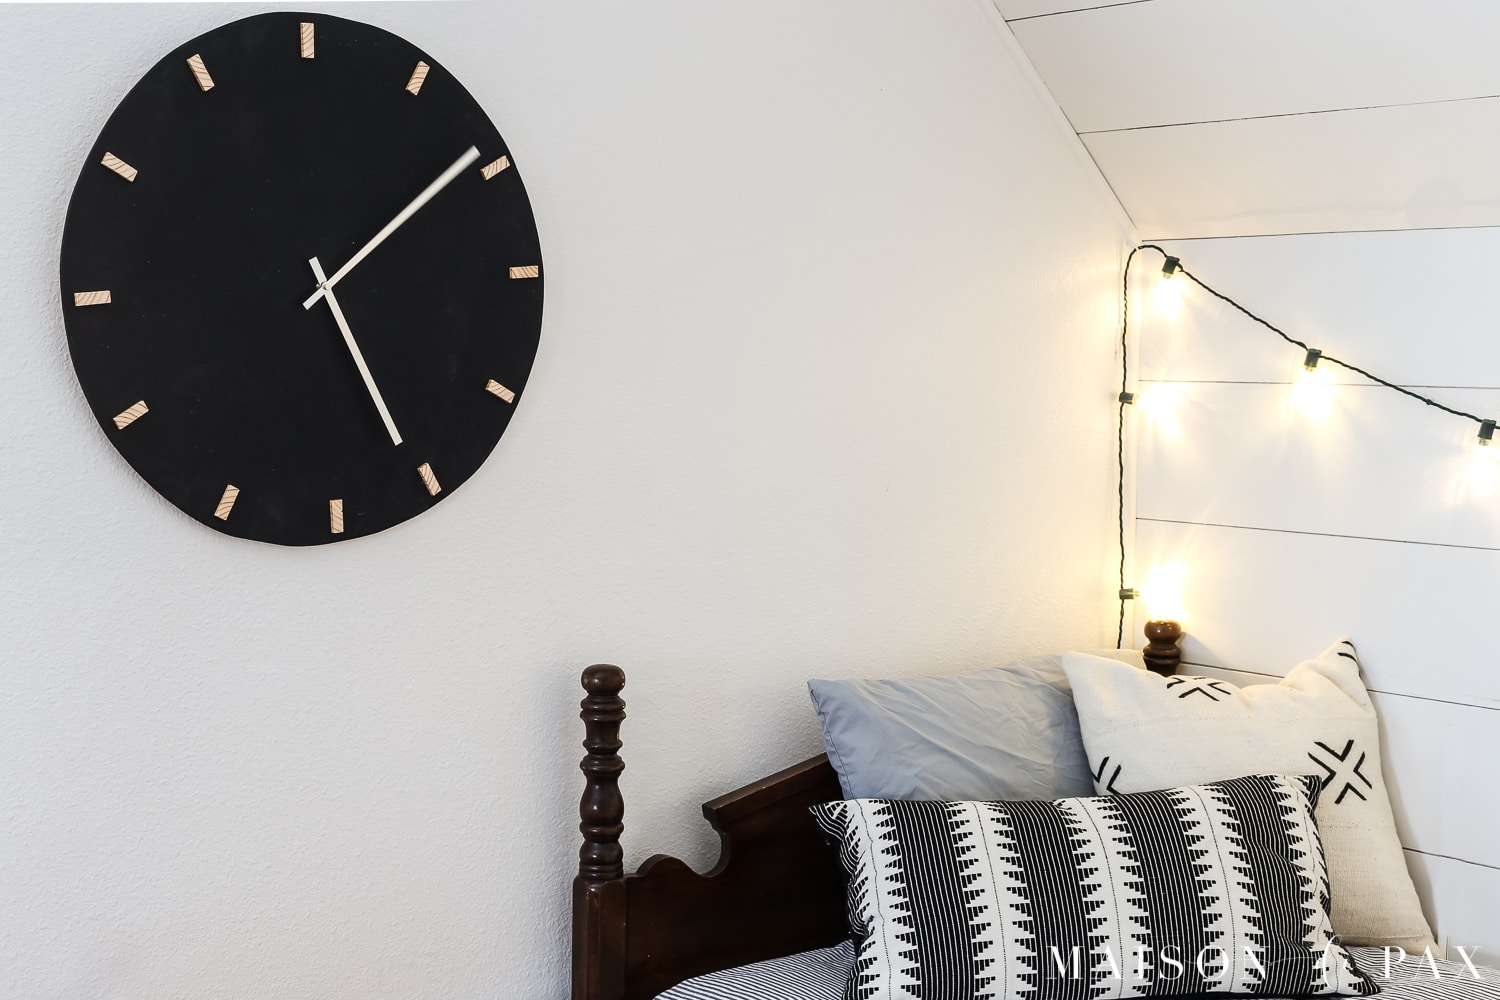 Giant black and wood wall clock!  Learn how to make this DIY black and wood giant wall clock for cheap! #wallart #diywallart #diyclock #wallclock #giantclock #modernfarmhouse #neutraldecor #kidsroom #boyroom #modernfarmhouse #blackandwhiteinteriors